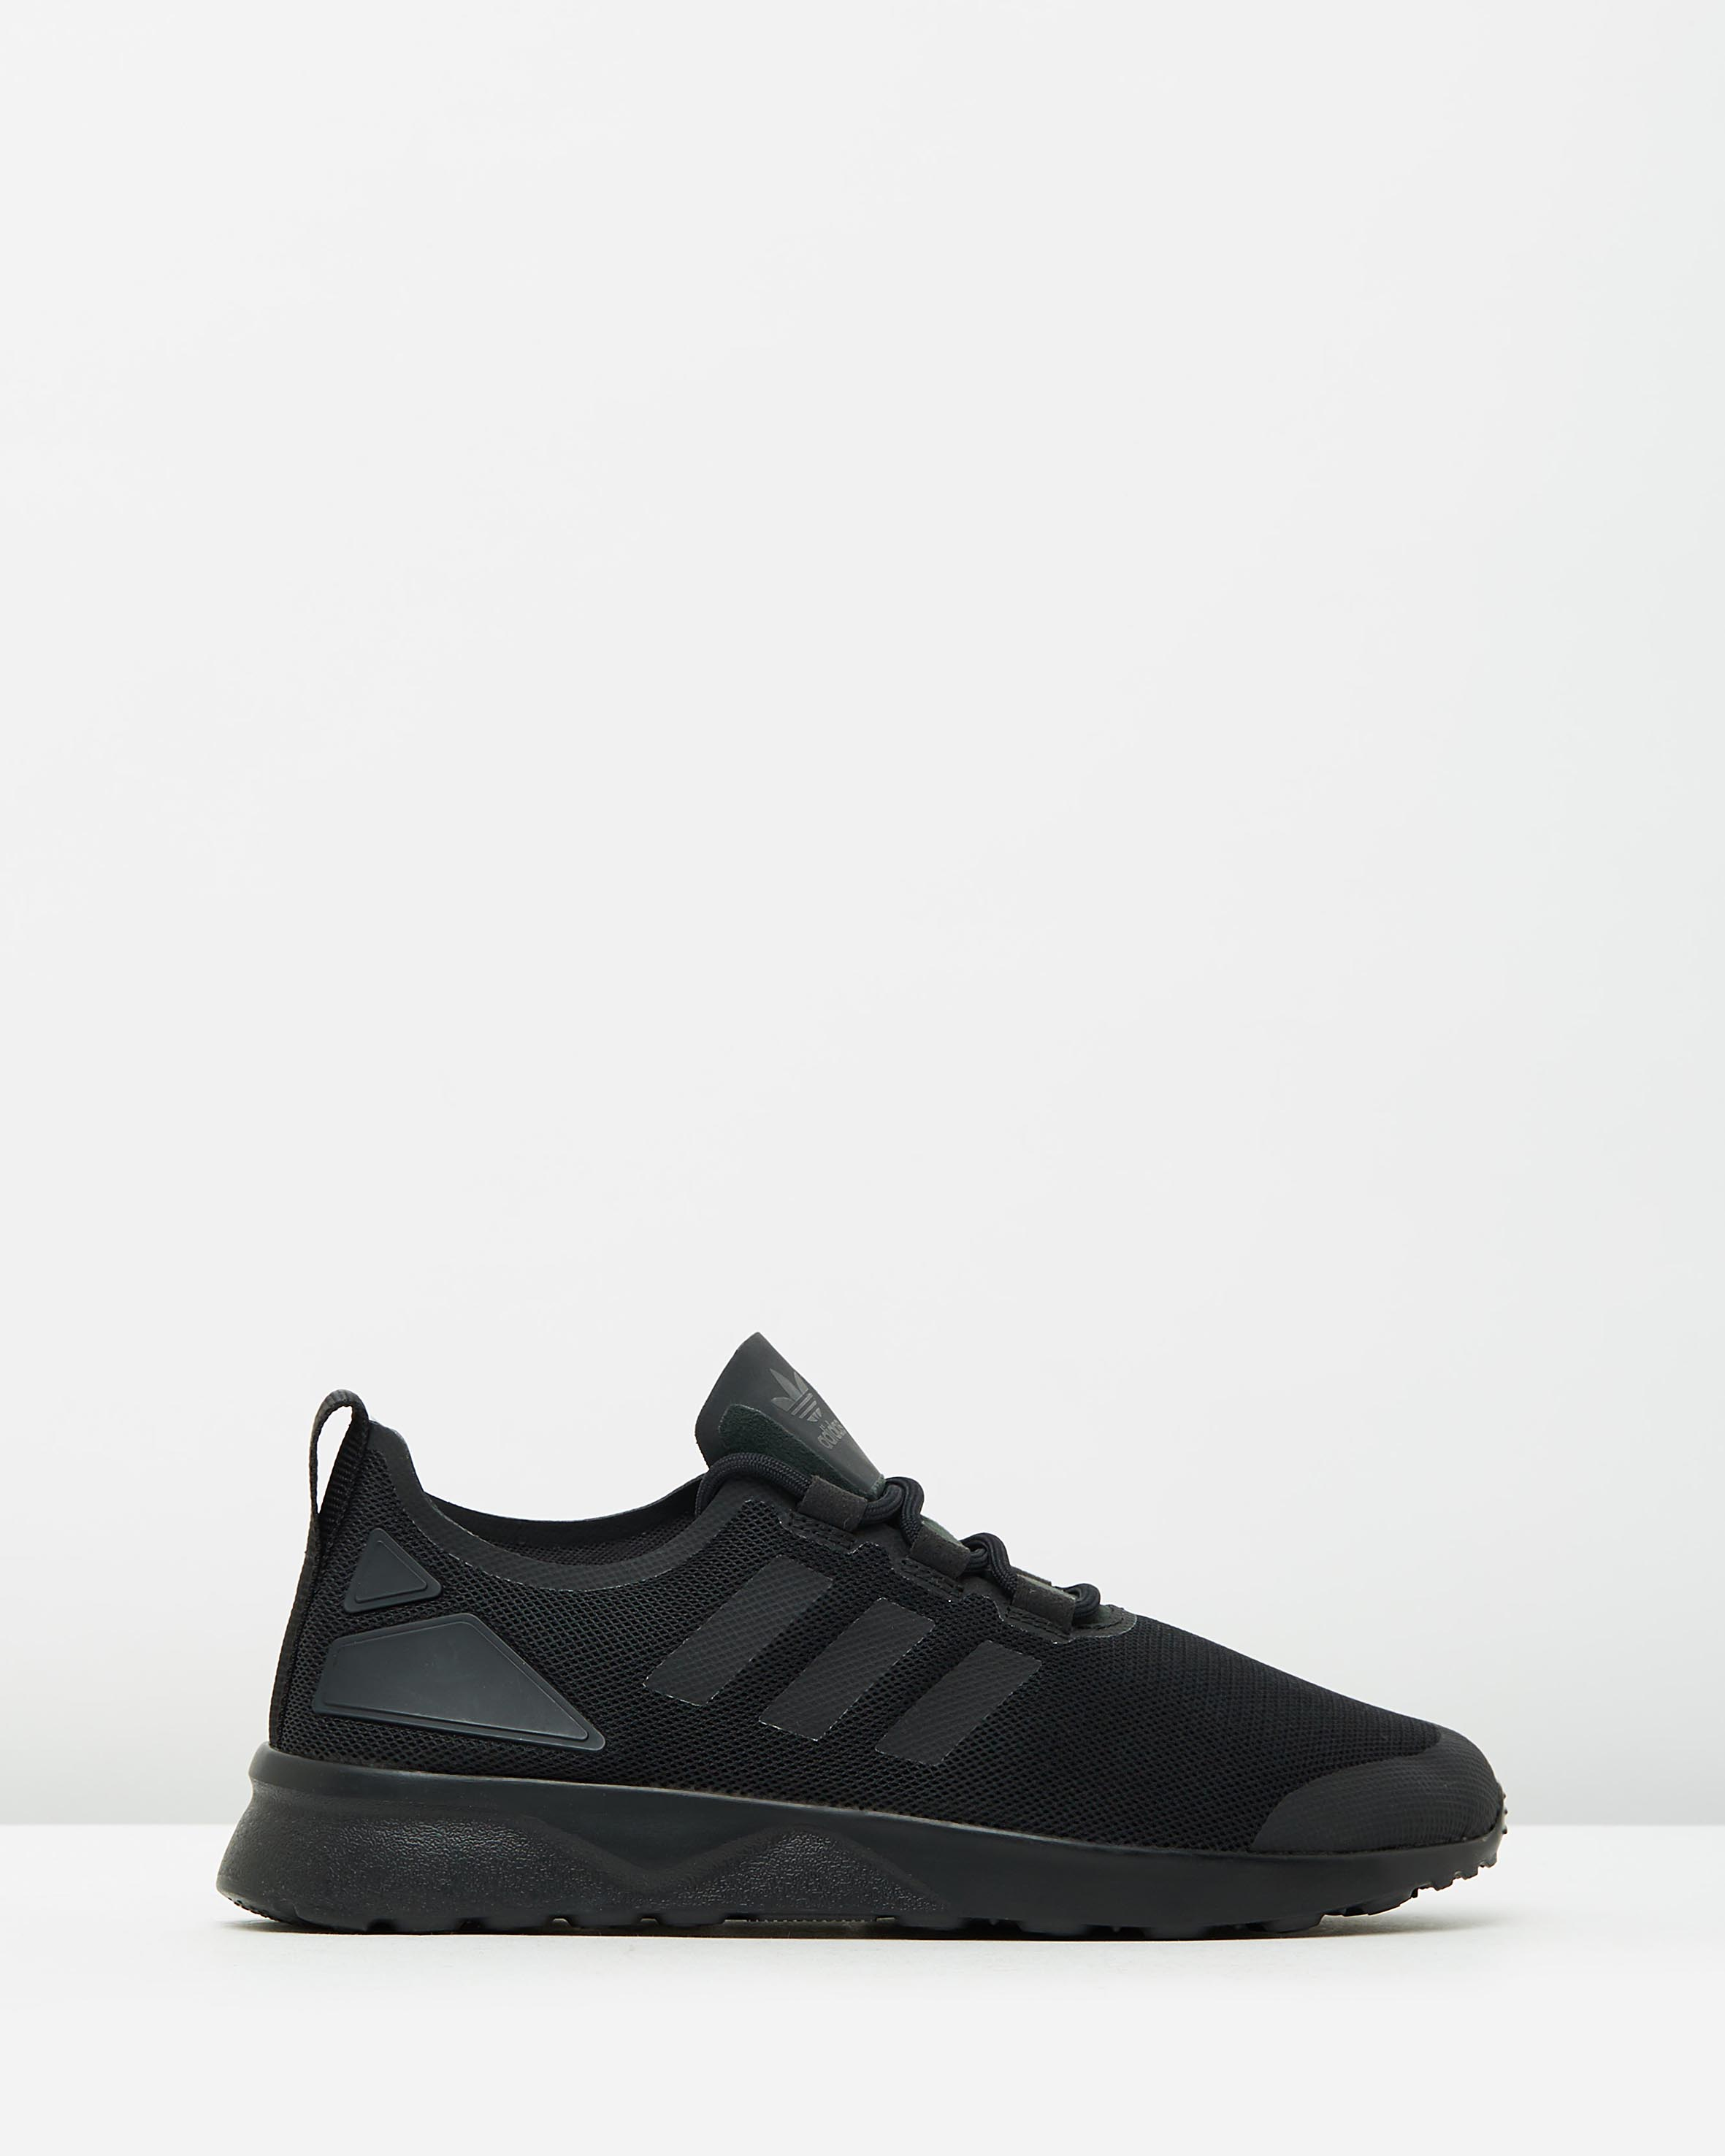 54cadfd56 ... coupon code for adidas zx flux adv verve w 1 555d8 fdef0